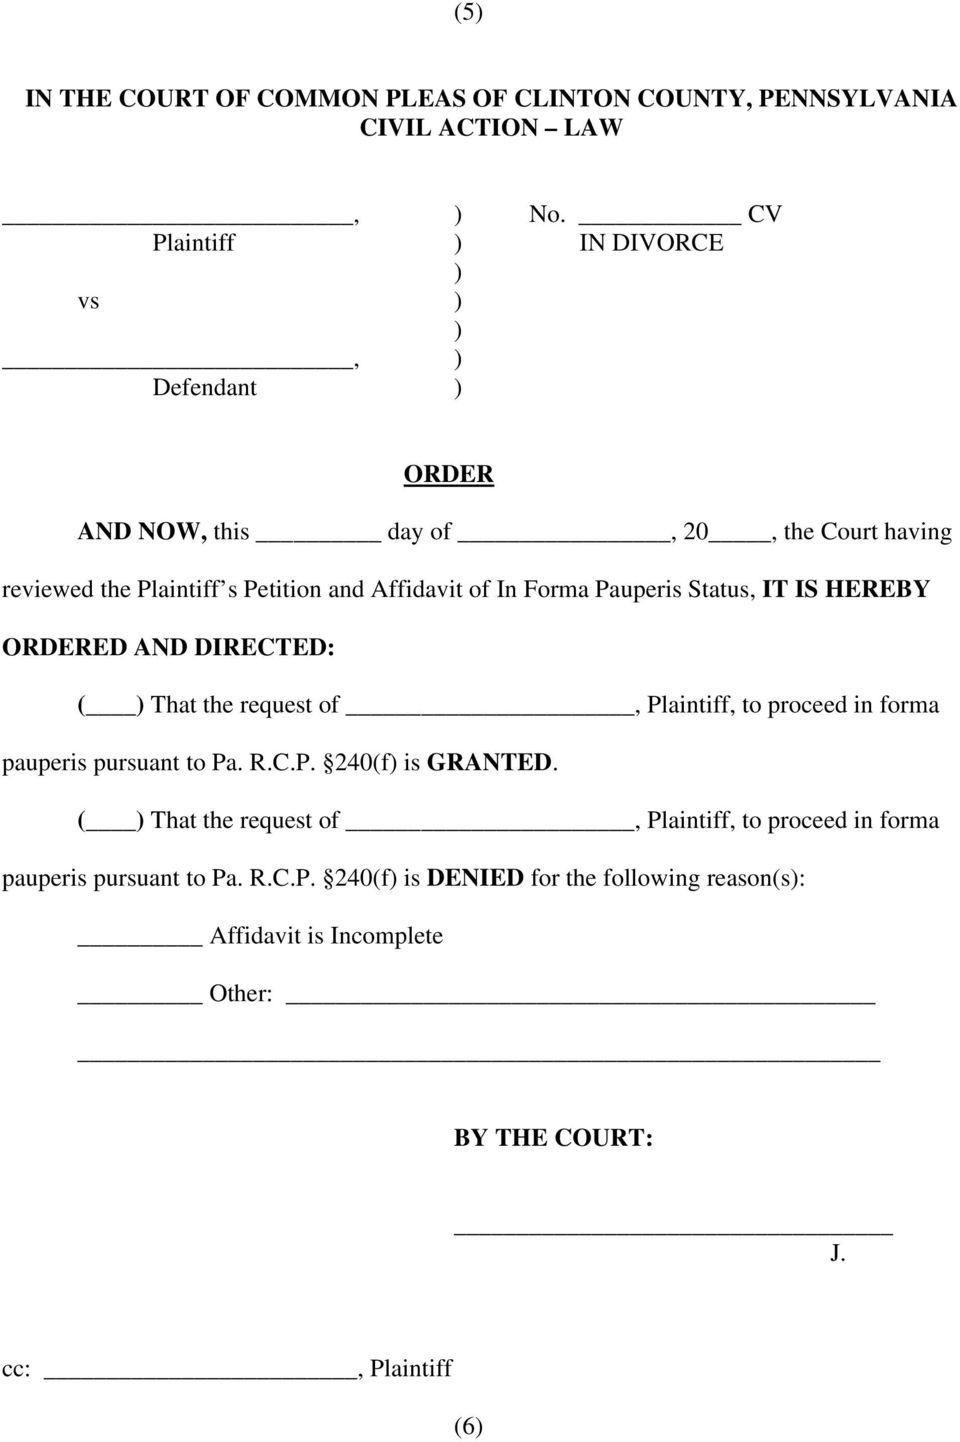 Pauperis Status, IT IS HEREBY ORDERED AND DIRECTED: ( ) That the request of, Plaintiff, to proceed in forma pauperis pursuant to Pa. R.C.P. 240(f) is GRANTED.